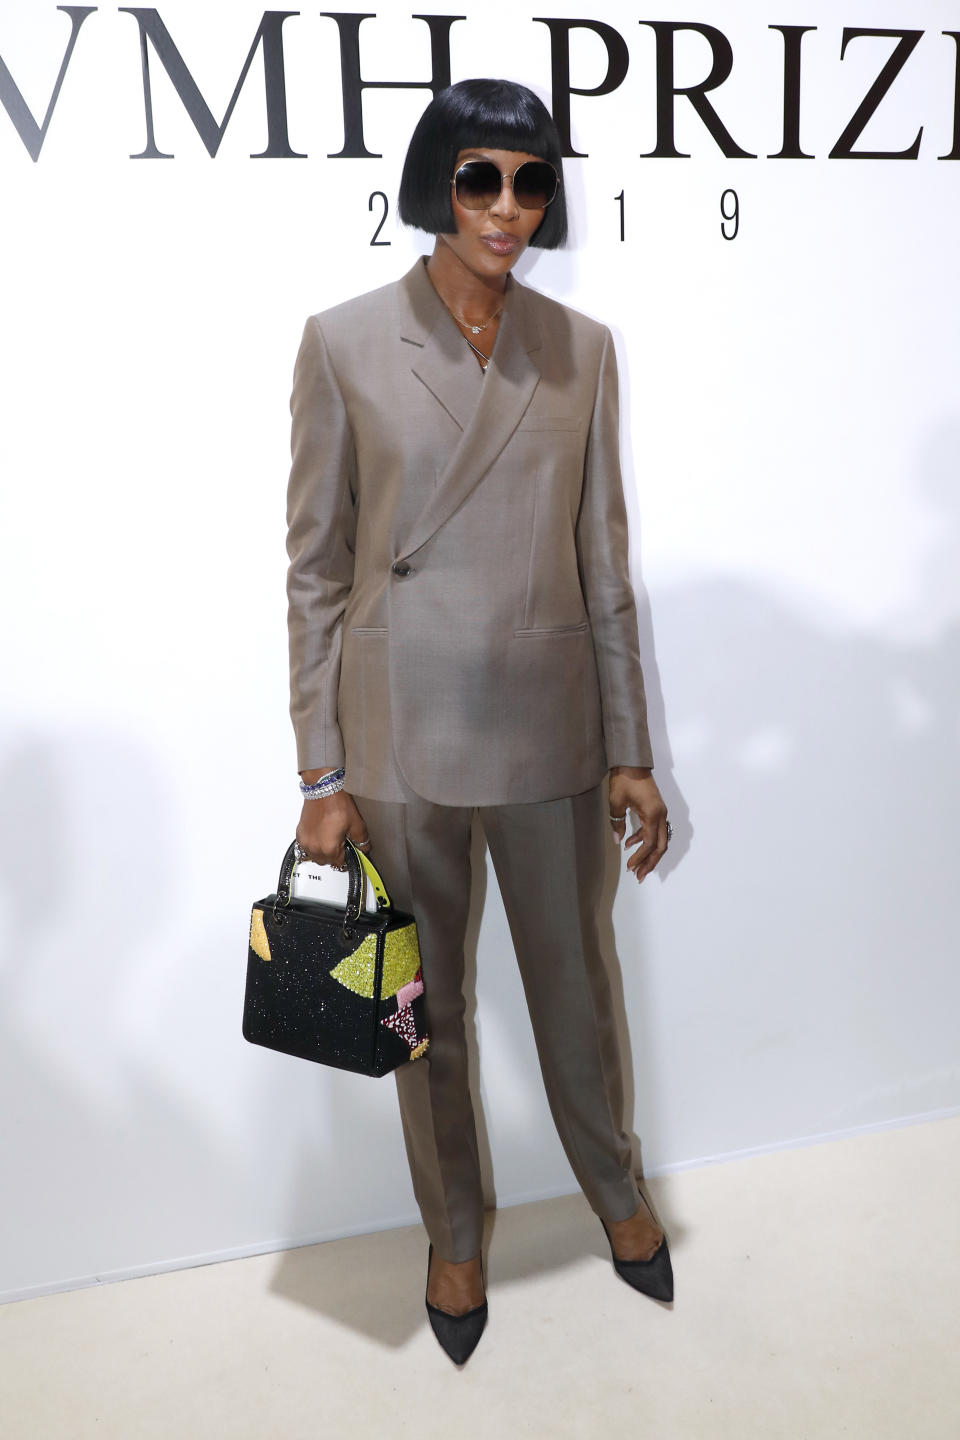 Channeling her inner Anna Wintour, Campbell rocked the blunt bob and oversized shades for the LVMH Prize 2019 Edition. The suit, a very different look for her, was a hit and we are especially in love with the boxed bag. [Getty Images]